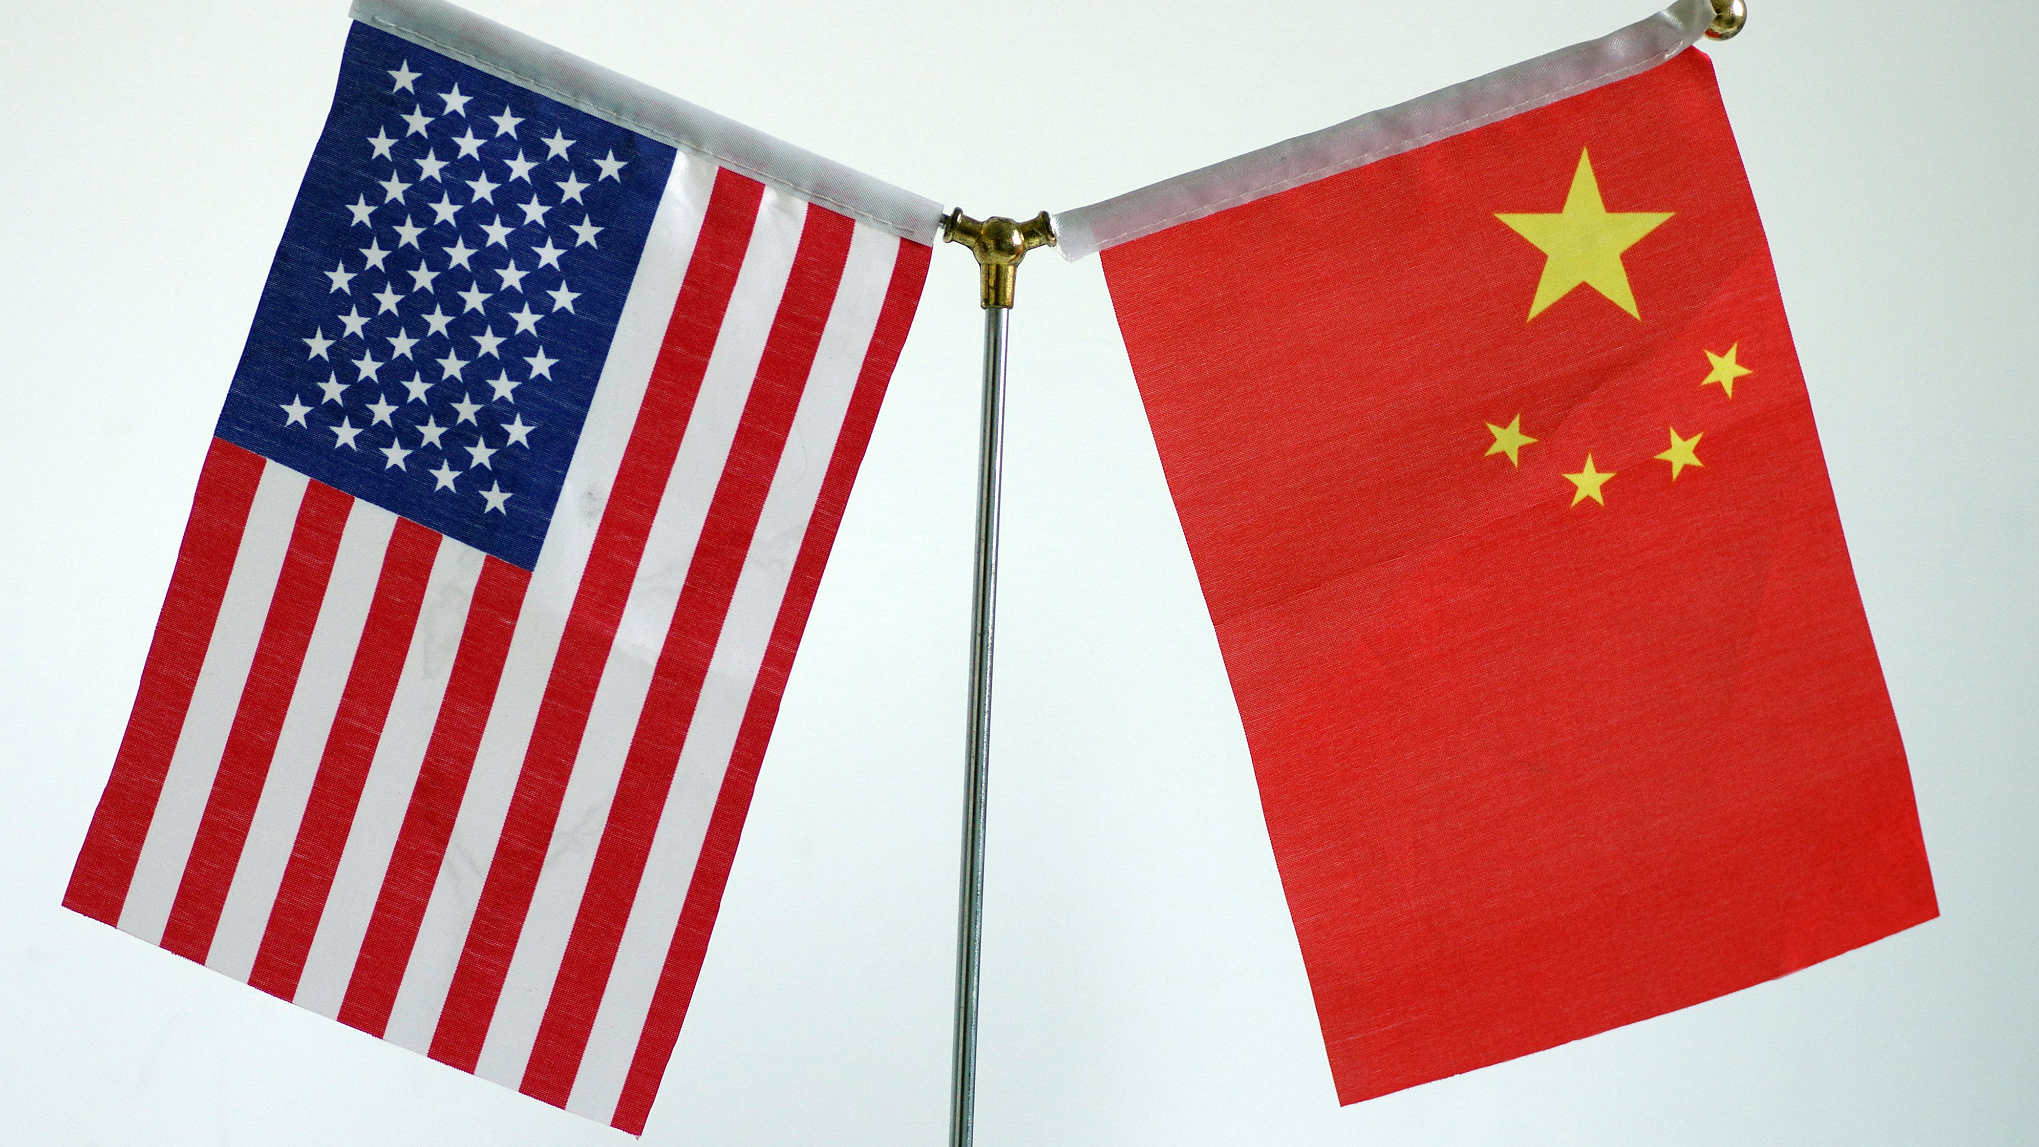 Provoking an 'economic war' against China is unreasonable: US scholars